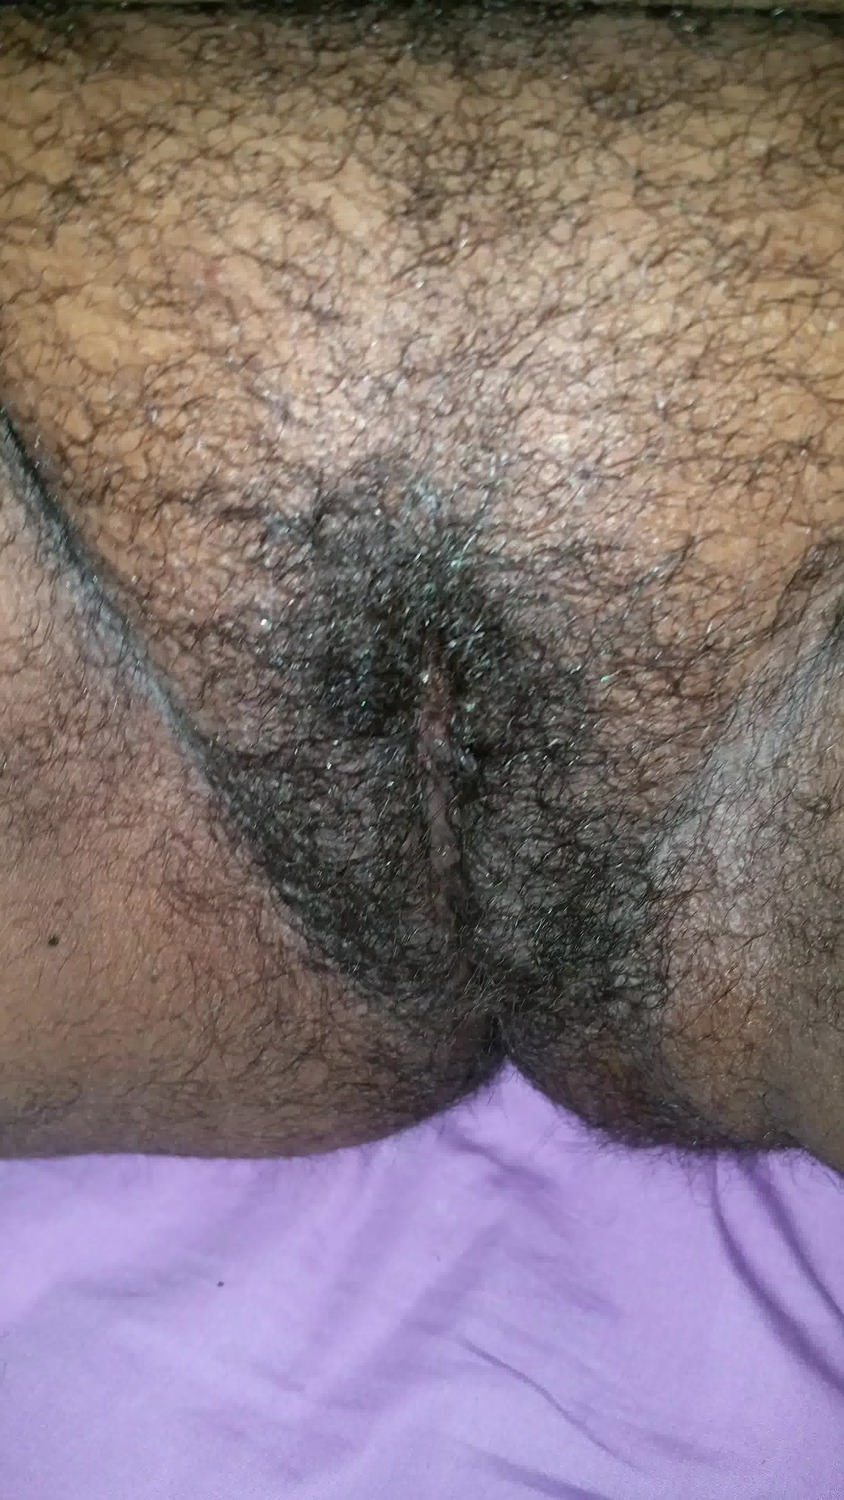 noire chatte: hairy black pussy 2